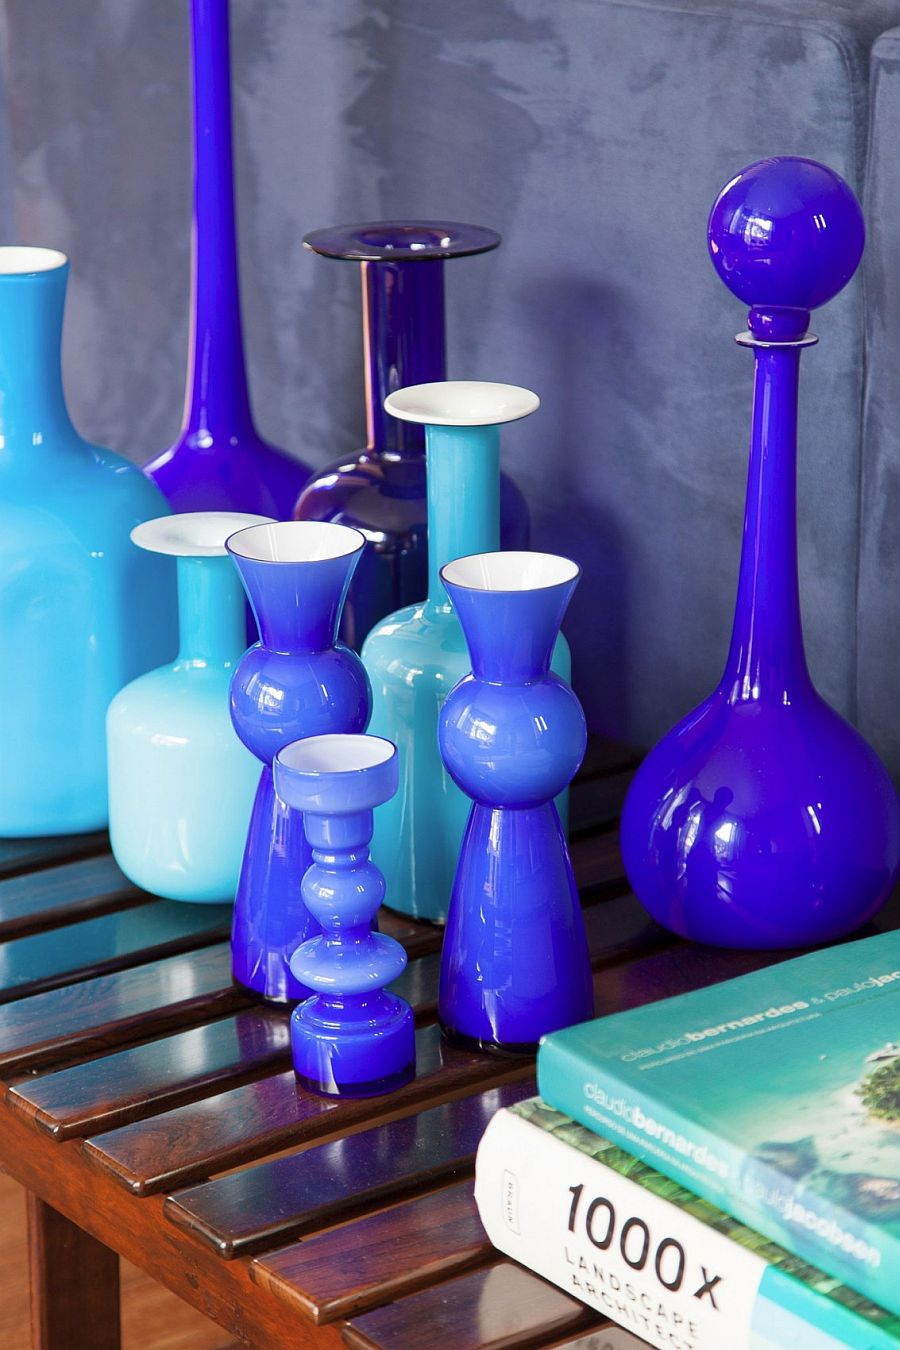 Curated collection of glossy vases in various shades of blue